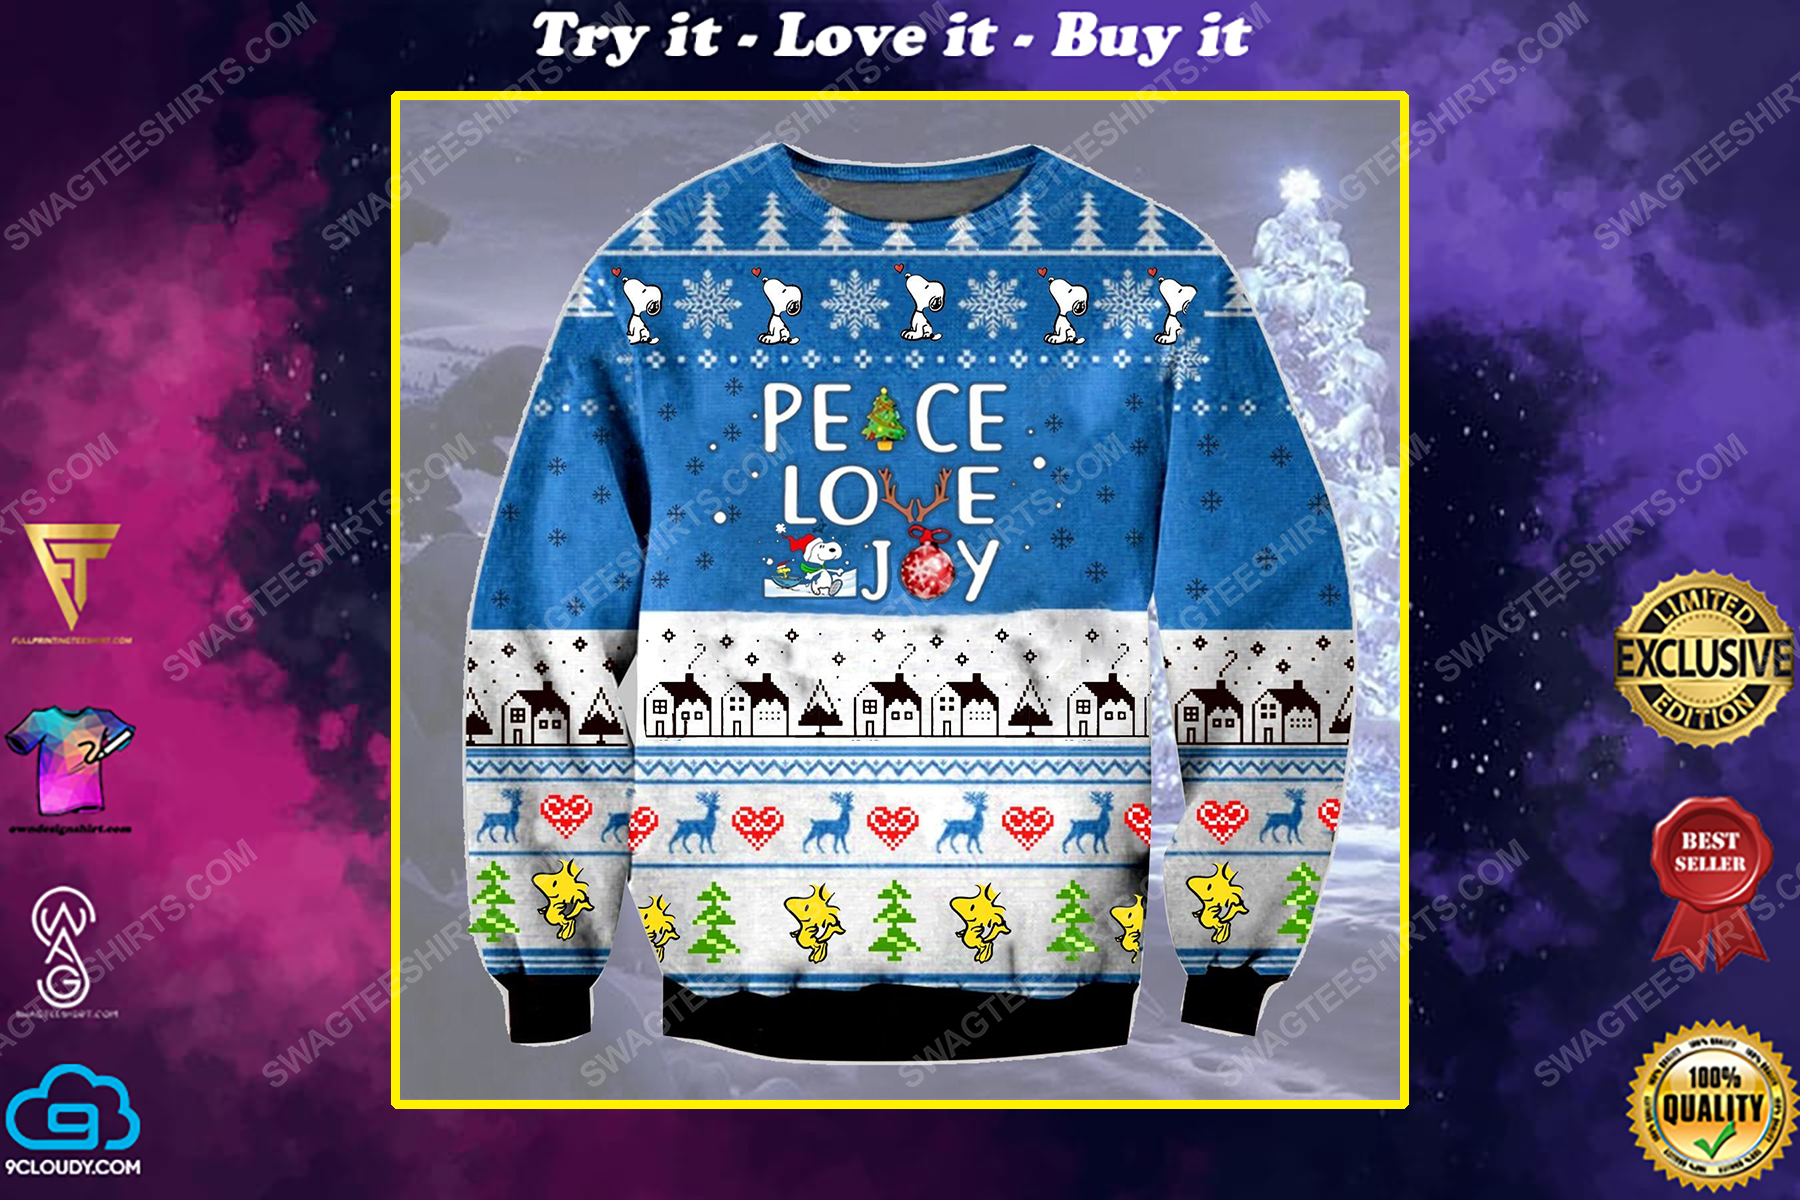 Charlie brown and snoopy peace love joy ugly christmas sweater 1